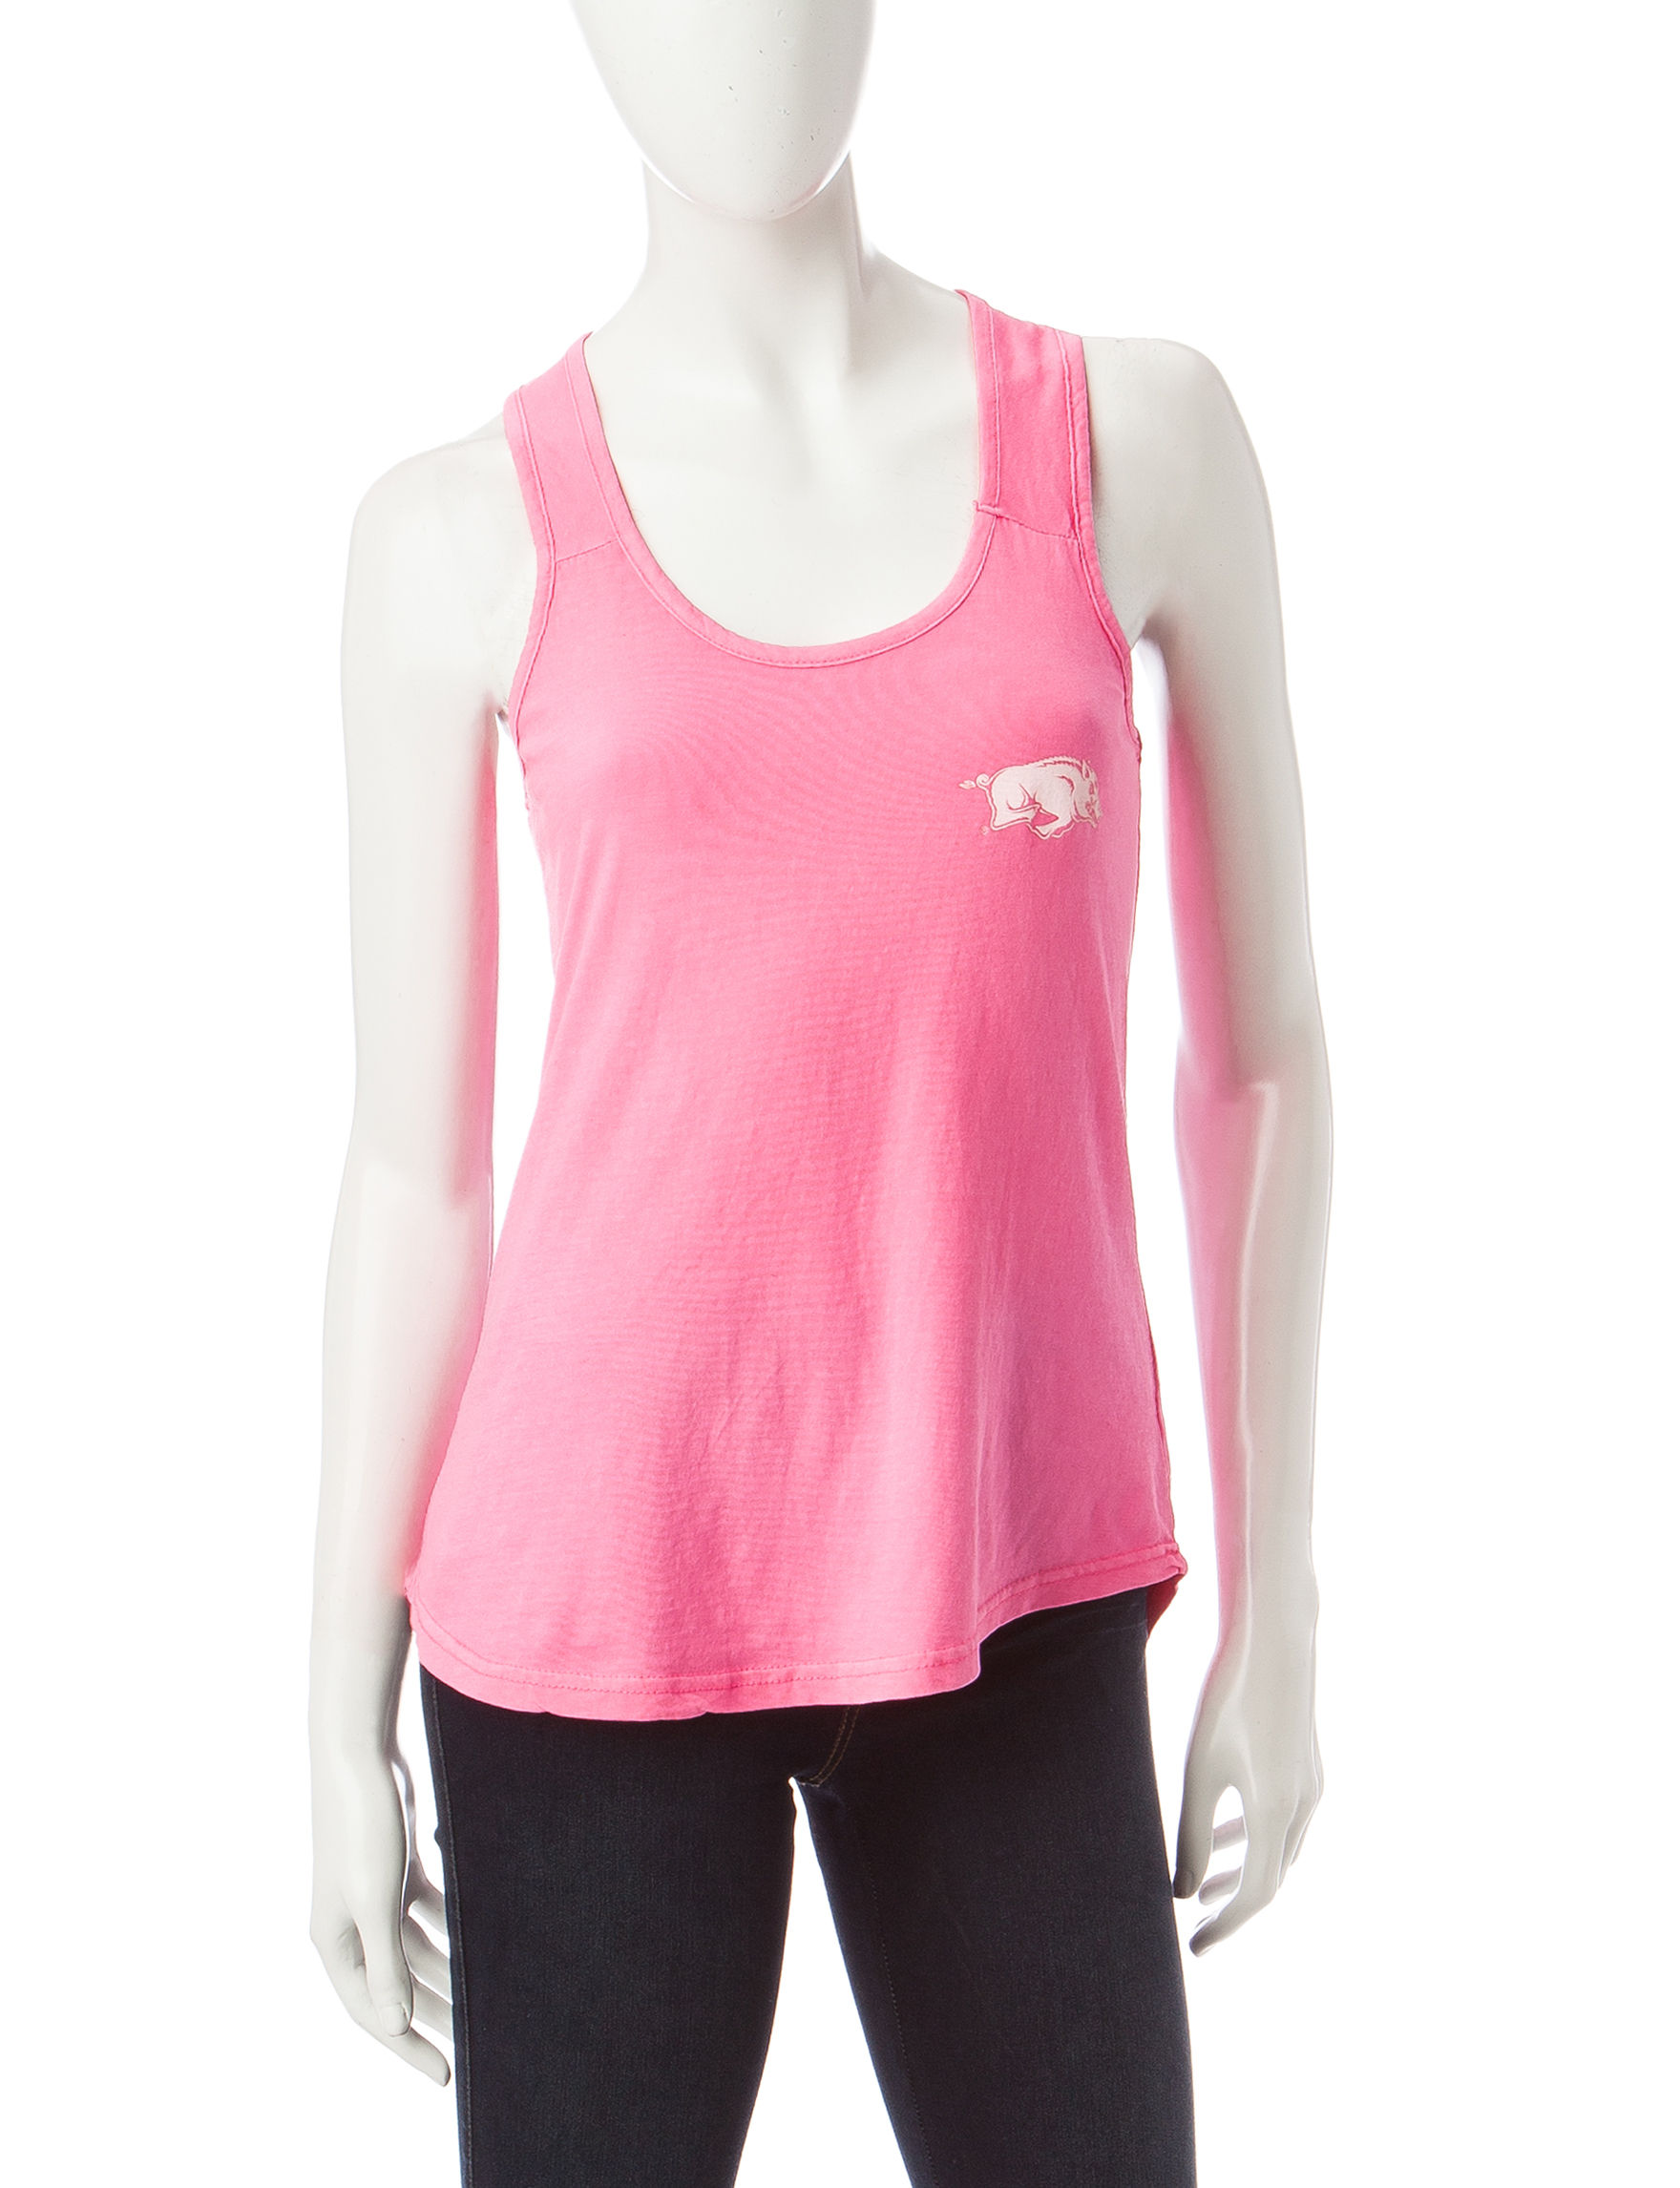 NCAA Neon Pink Camisoles & Tanks Tees & Tanks